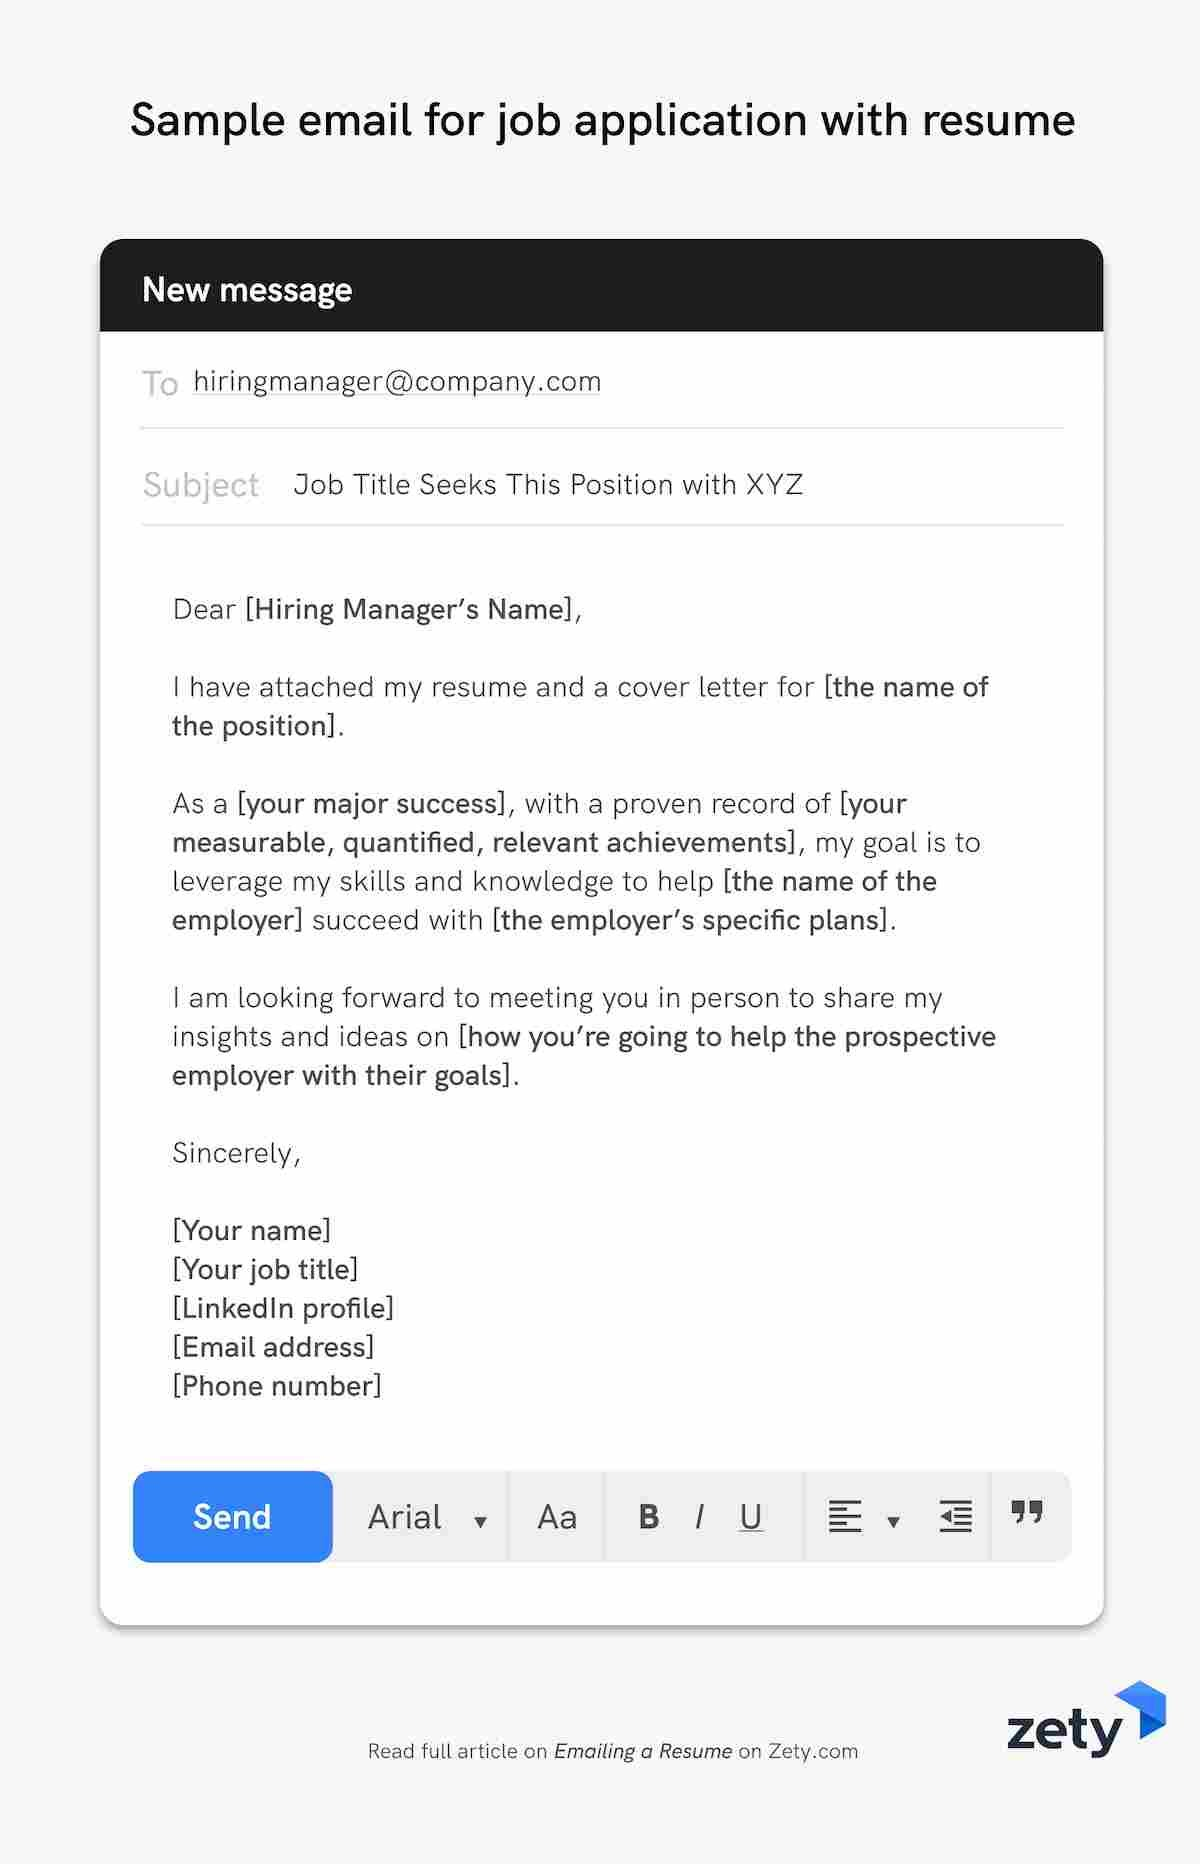 emailing resume job application email samples writing for sending sample with bld come Resume Email Writing For Sending Resume